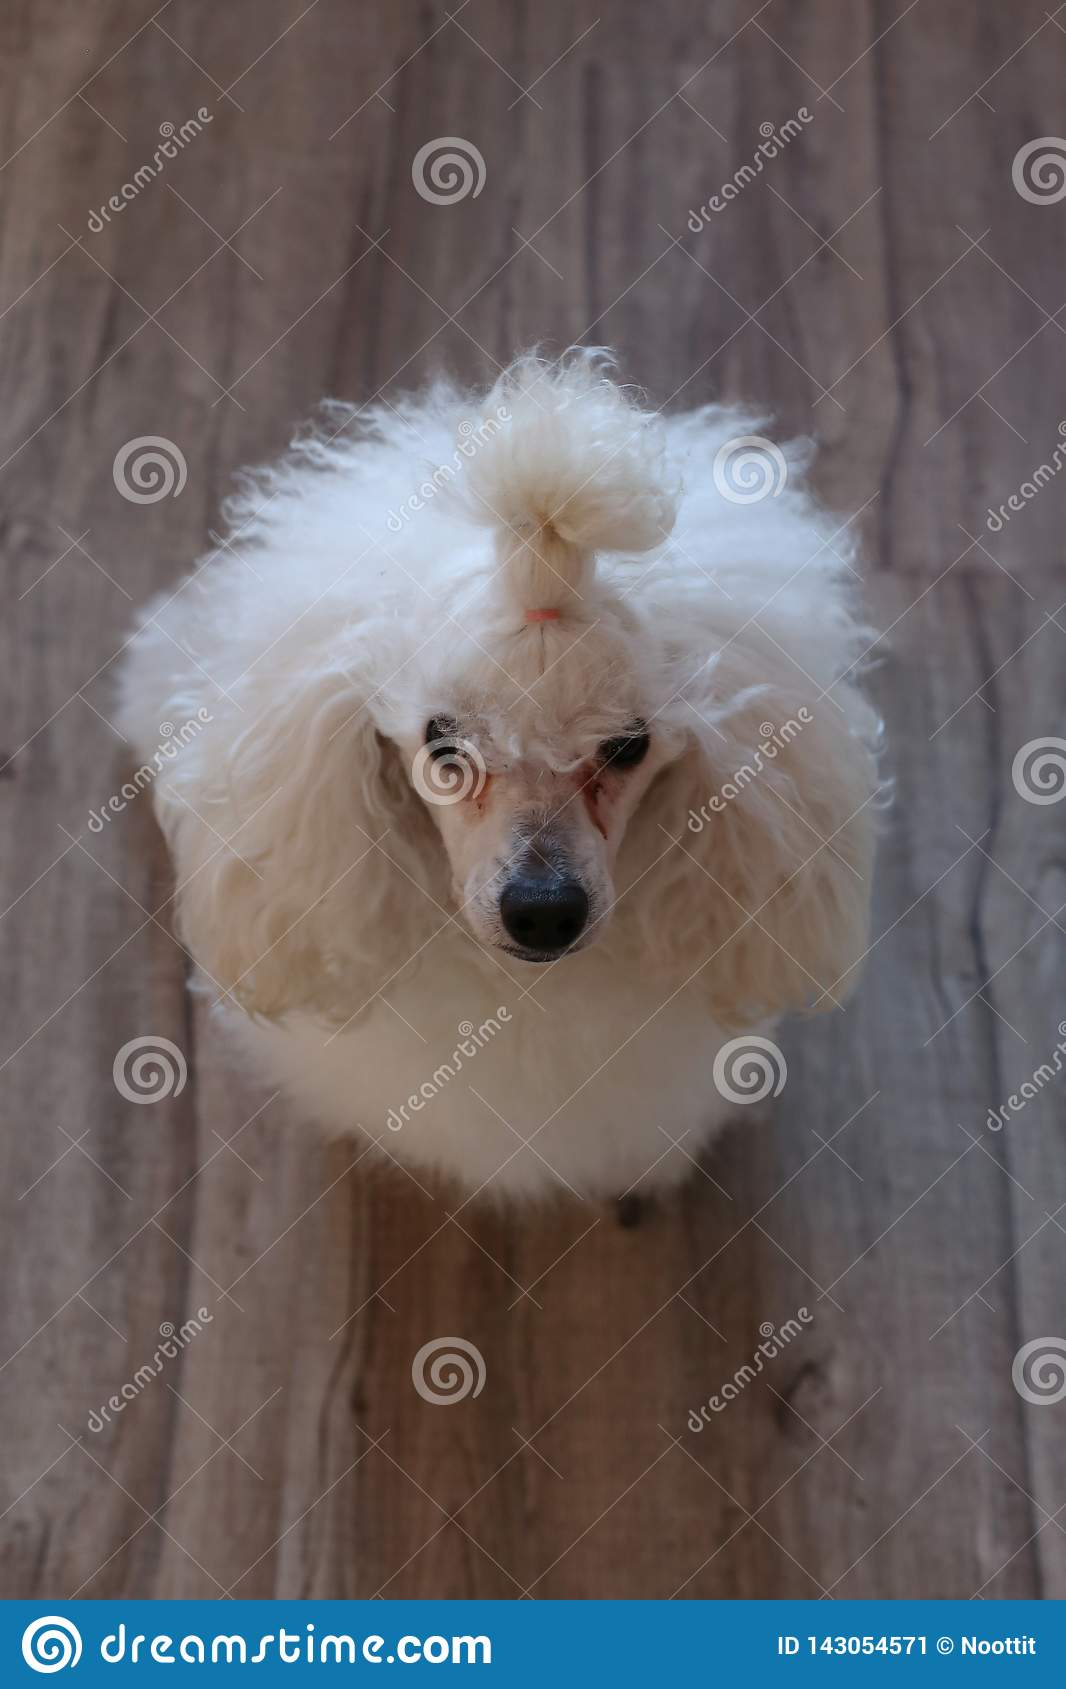 Super Cute and Fluffy White Miniature Poodle